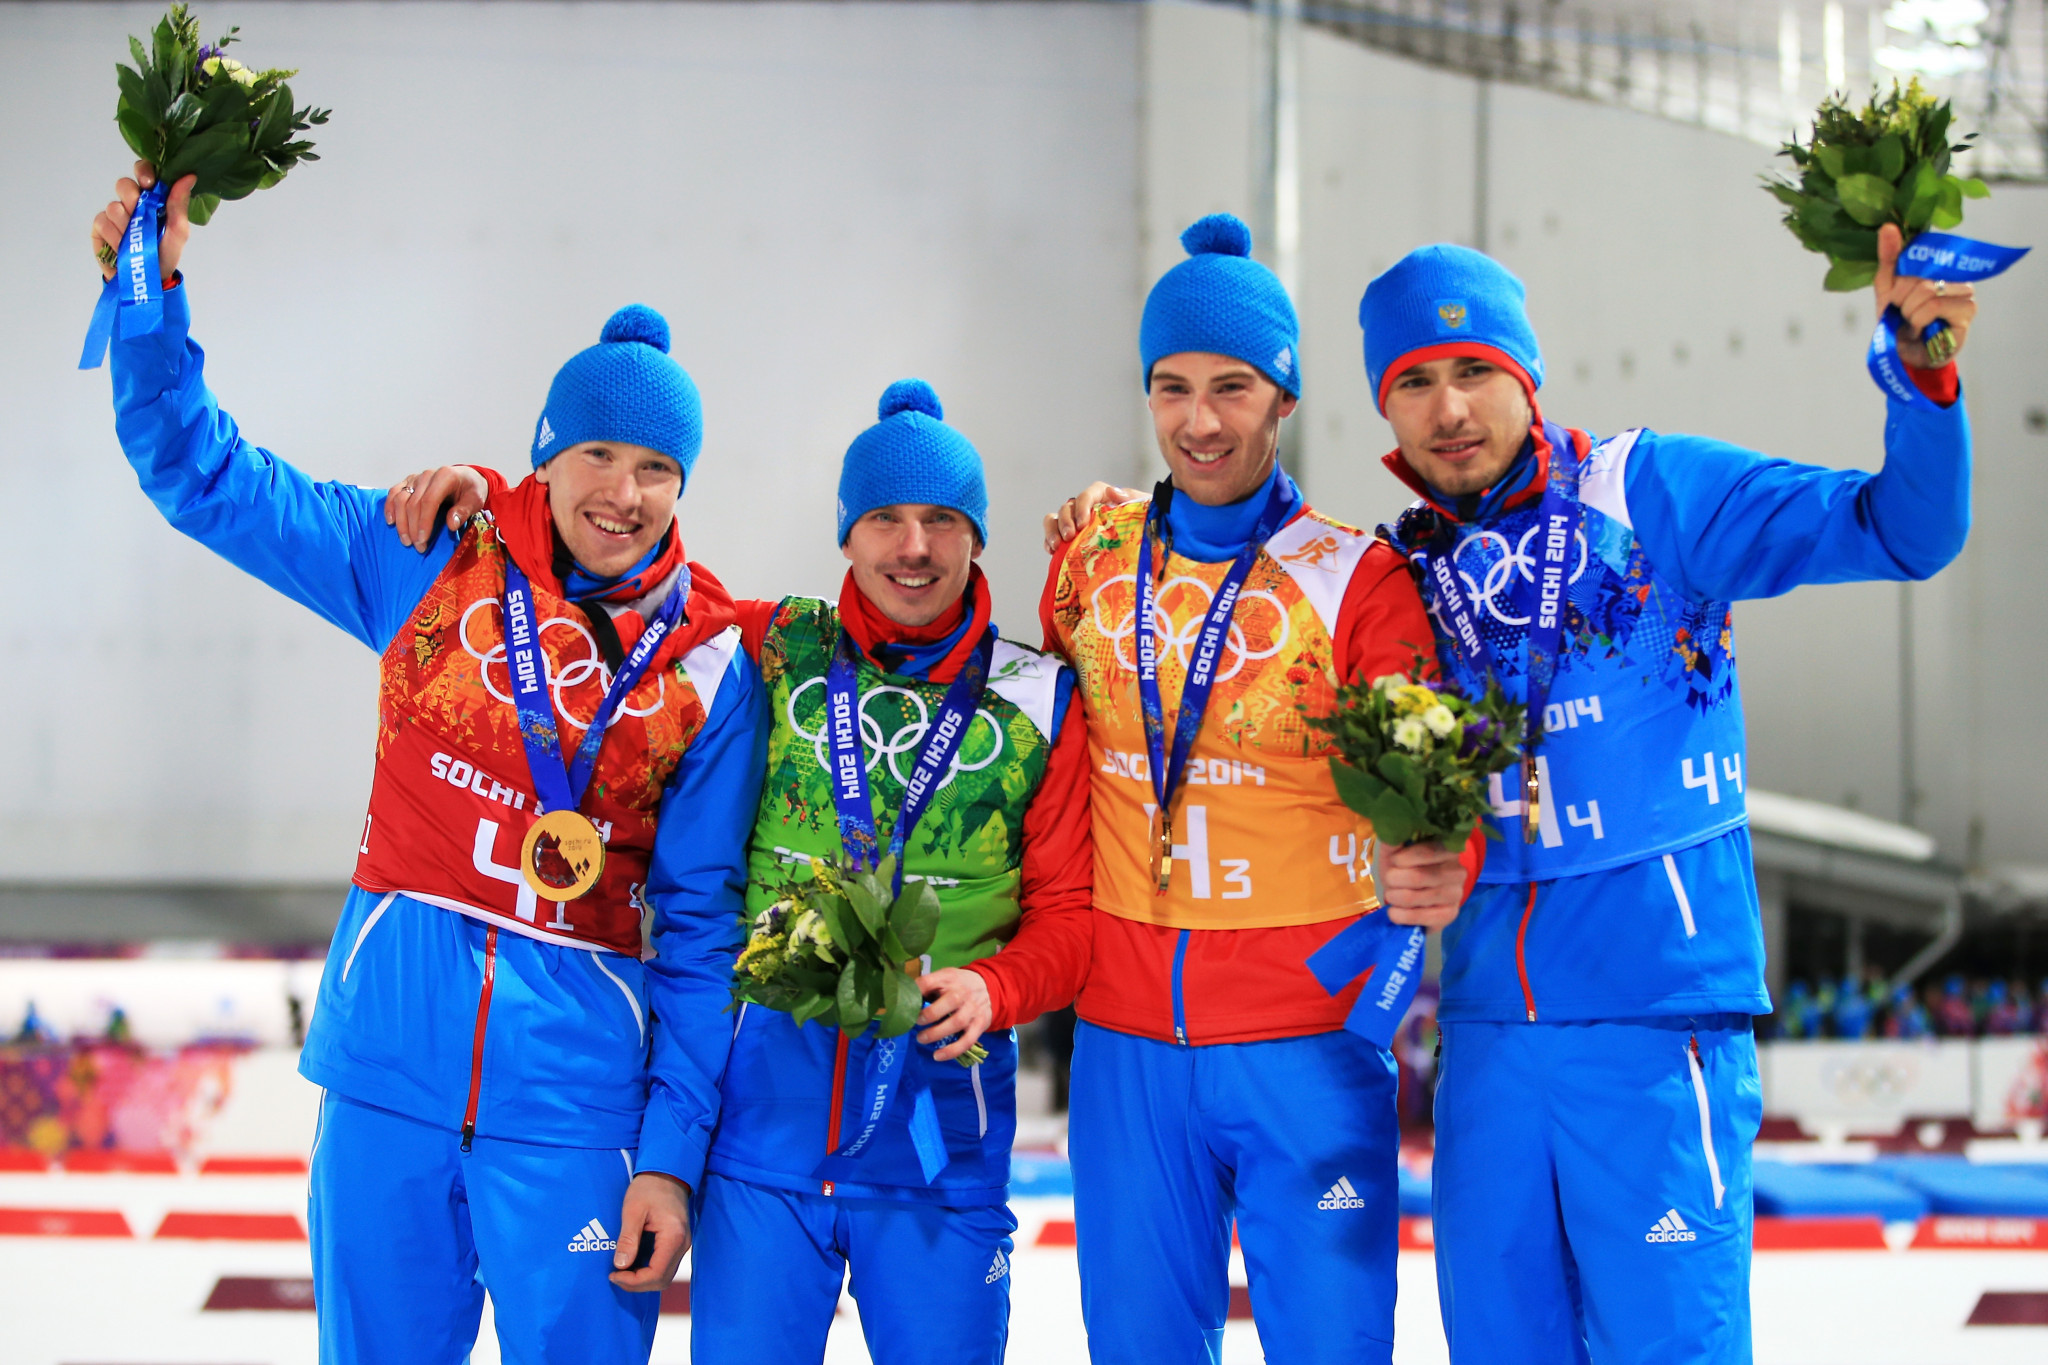 Russian's biathlon team relay champions could be stripped of their Sochi 2014 gold medal ©Getty Images